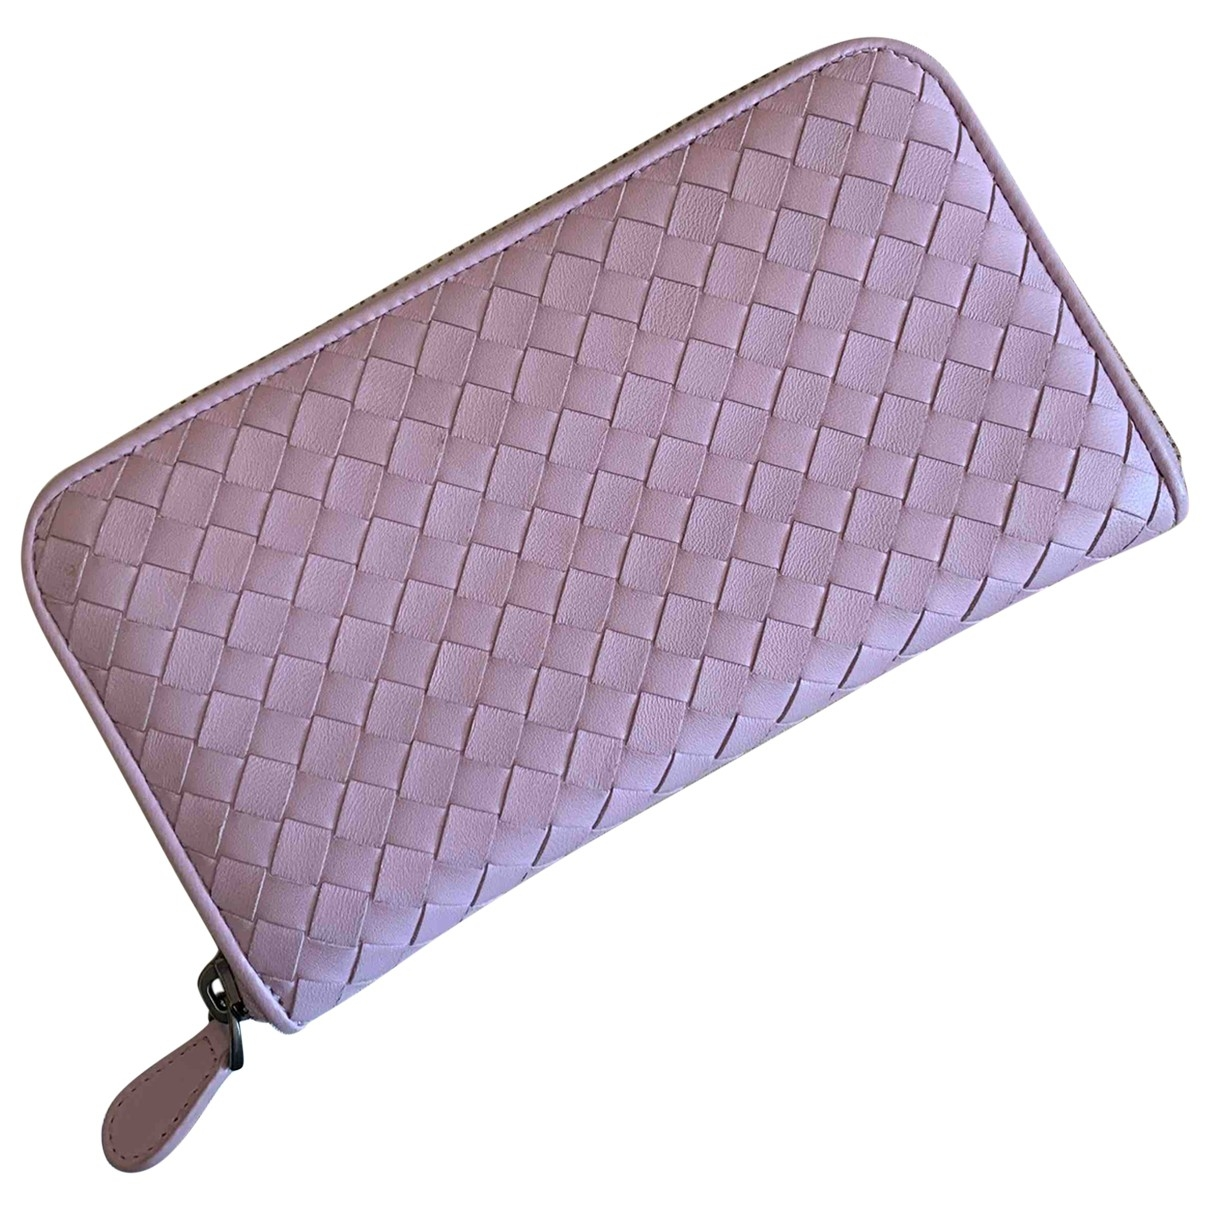 Bottega Veneta Intrecciato Pink Leather wallet for Women \N